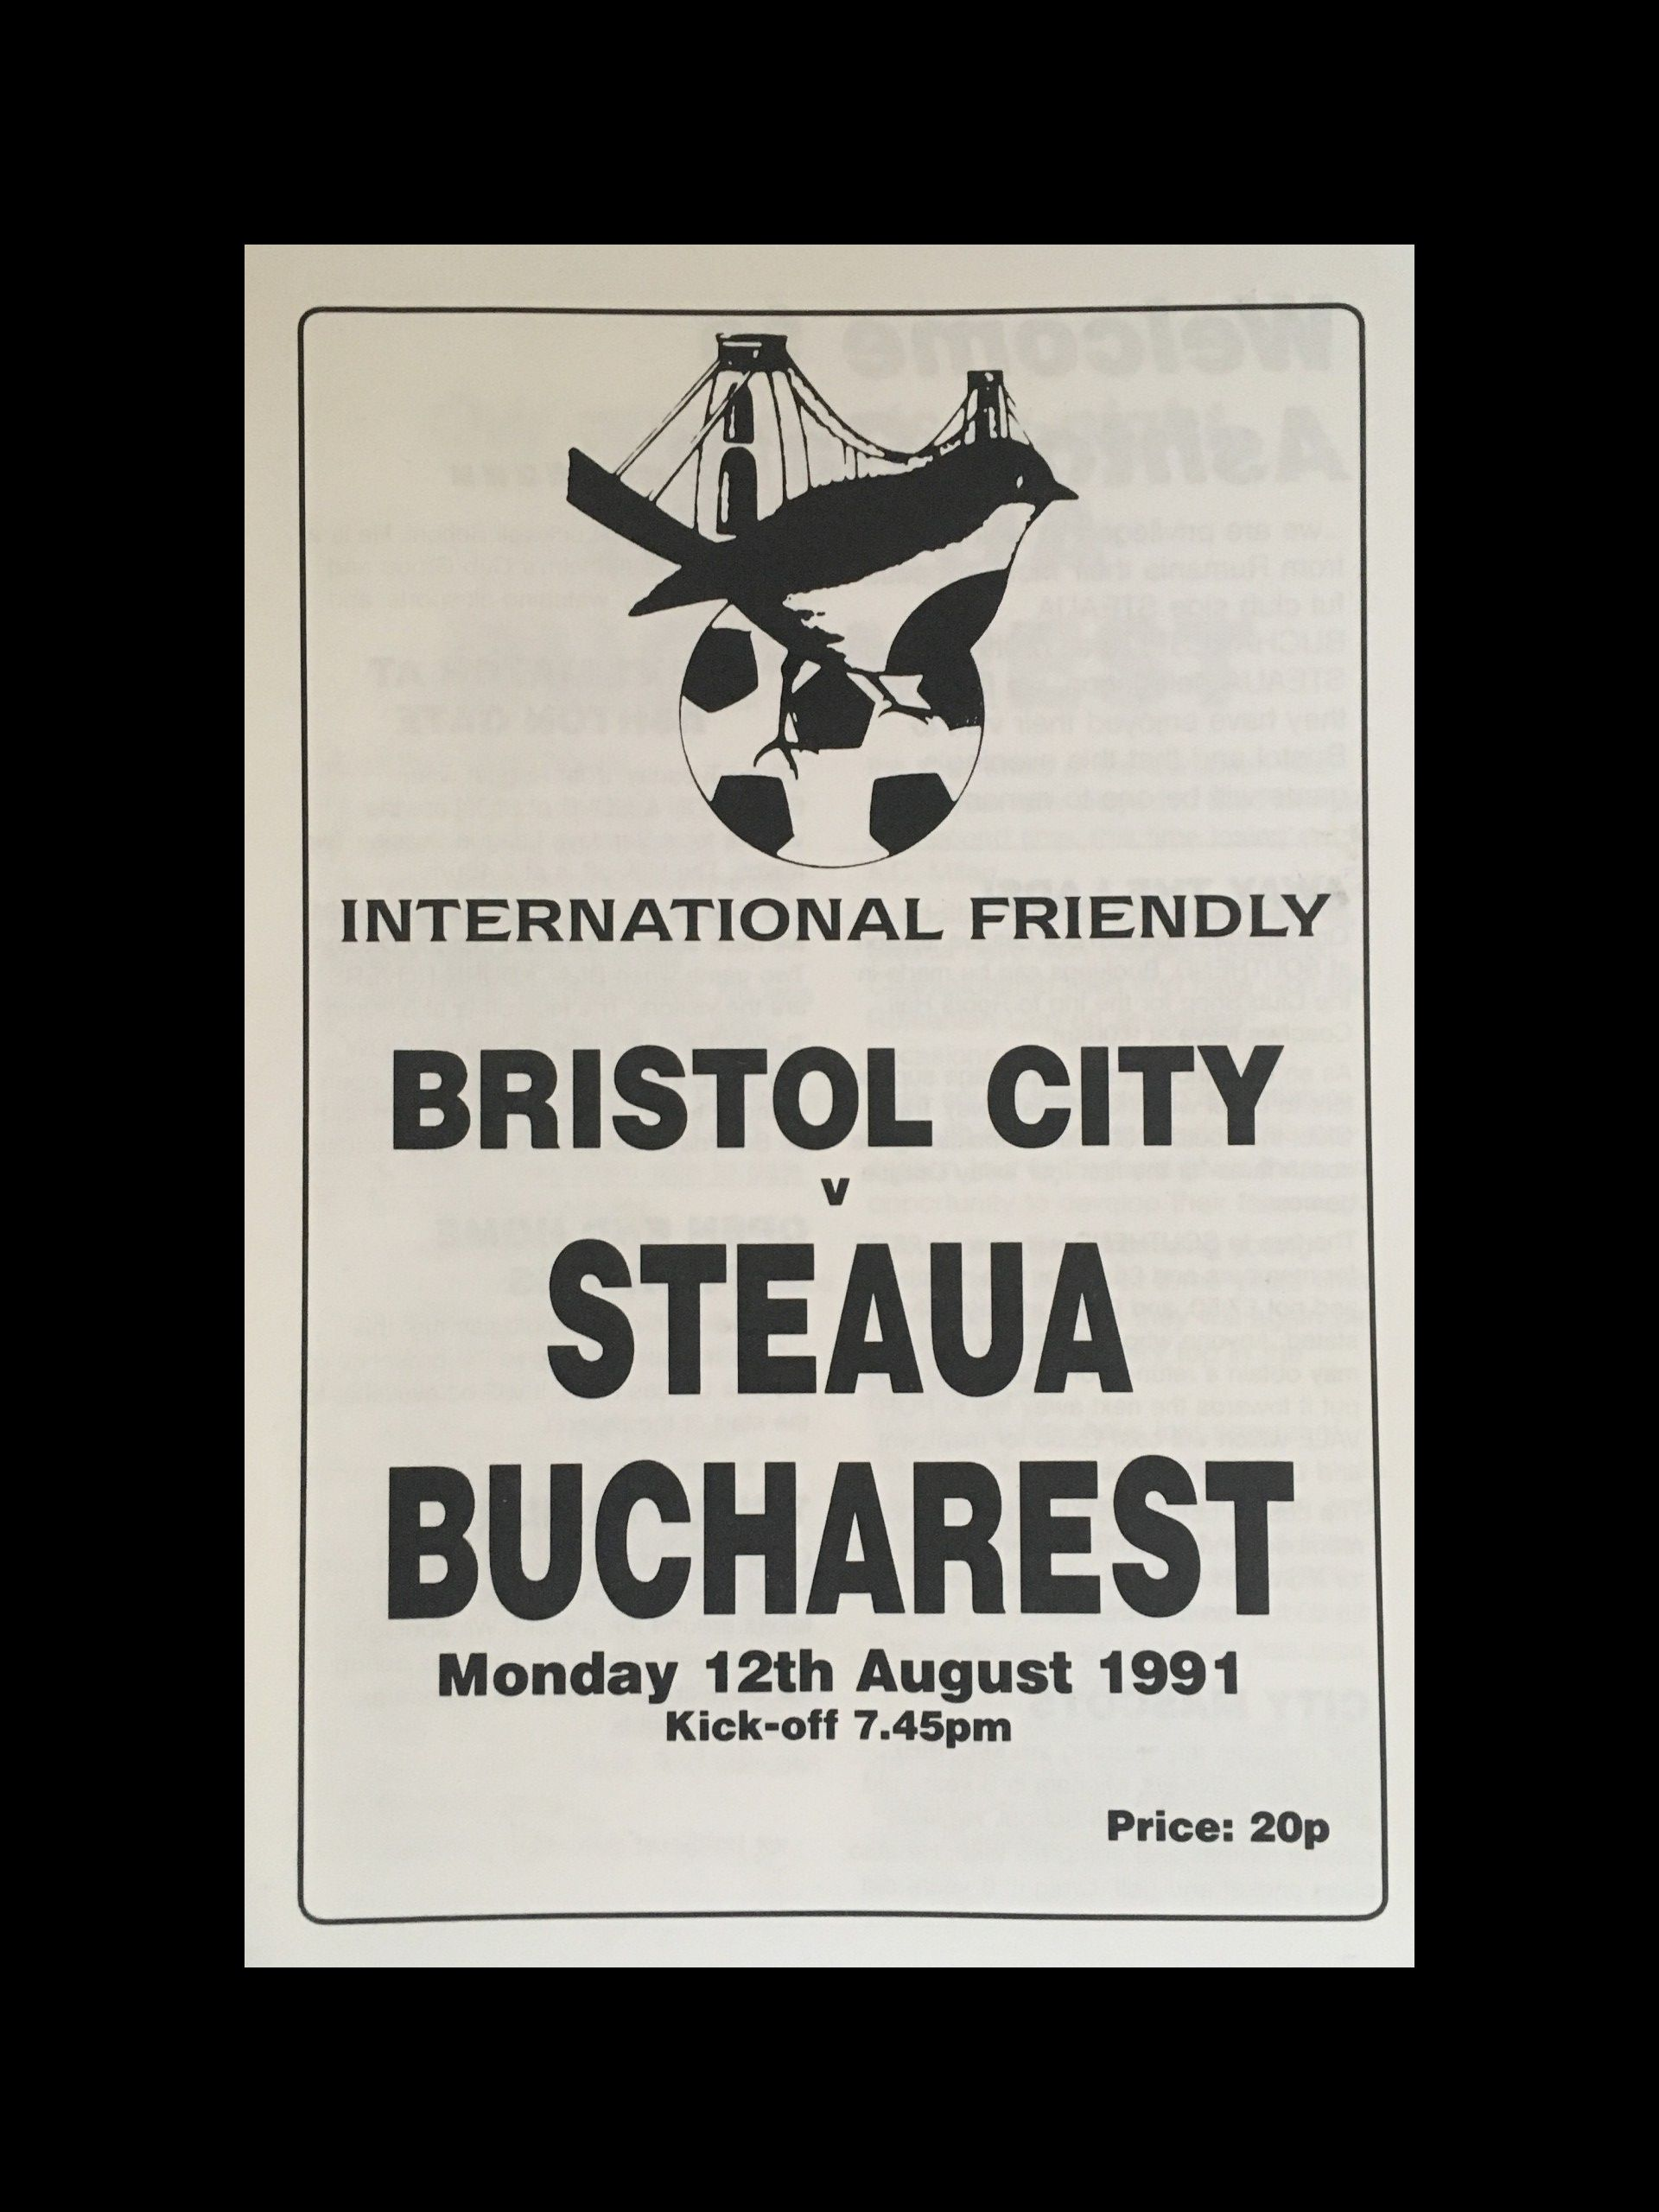 Bristol City v Steaua Bucharest 12-08-1991 Programme